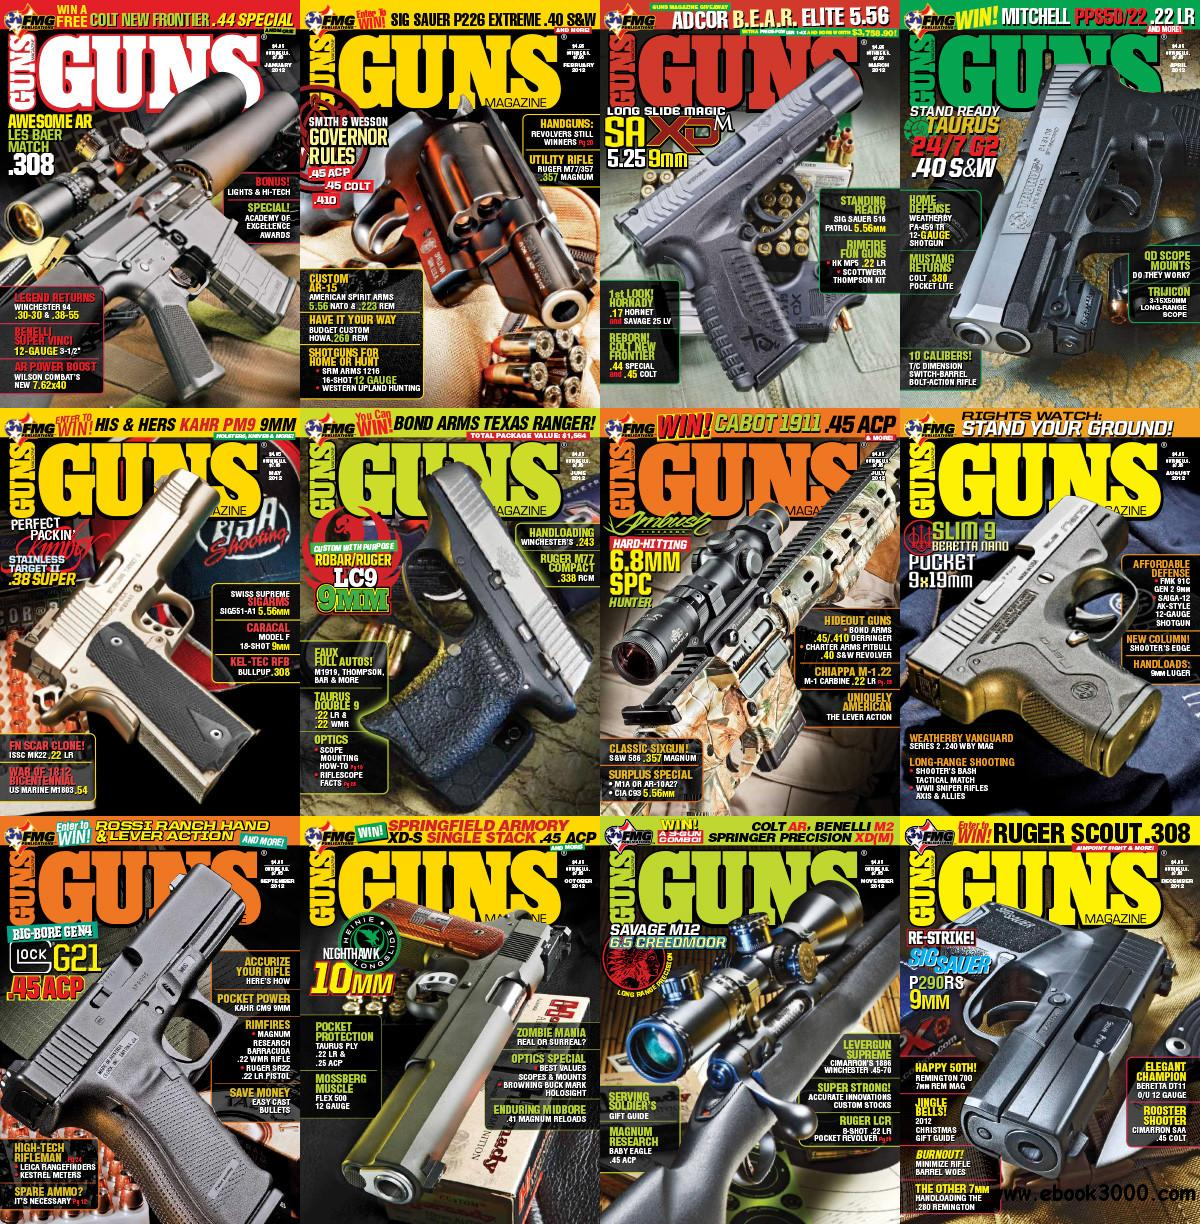 Guns Magazine 2012 Full Year Collection free download